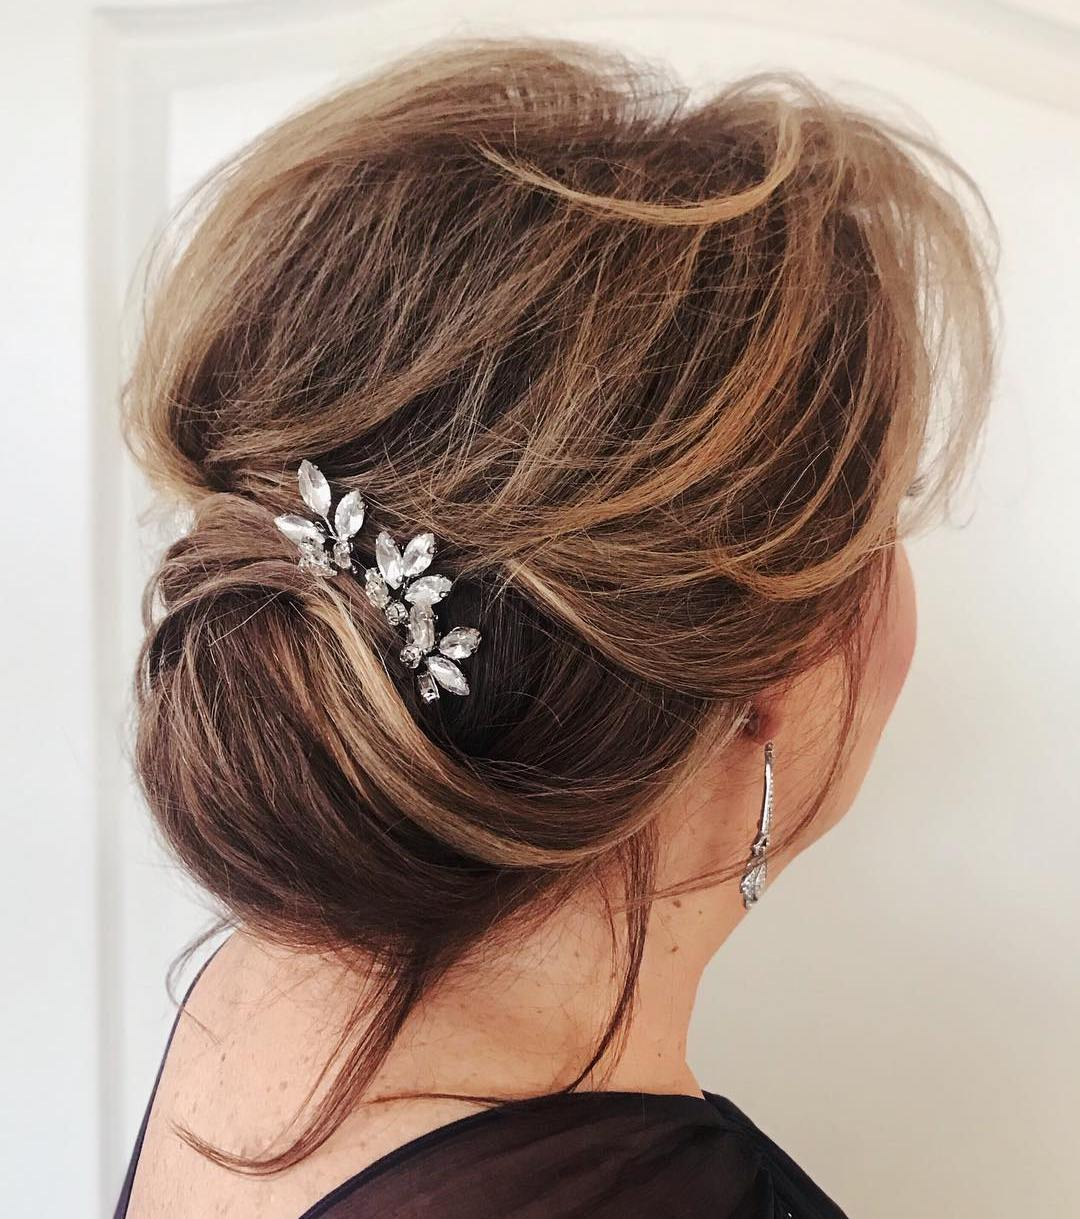 30 Stunning Wedding Hairstyles Ideas In 2019: 30 Gorgeous Mother Of The Bride Hairstyles For 2020